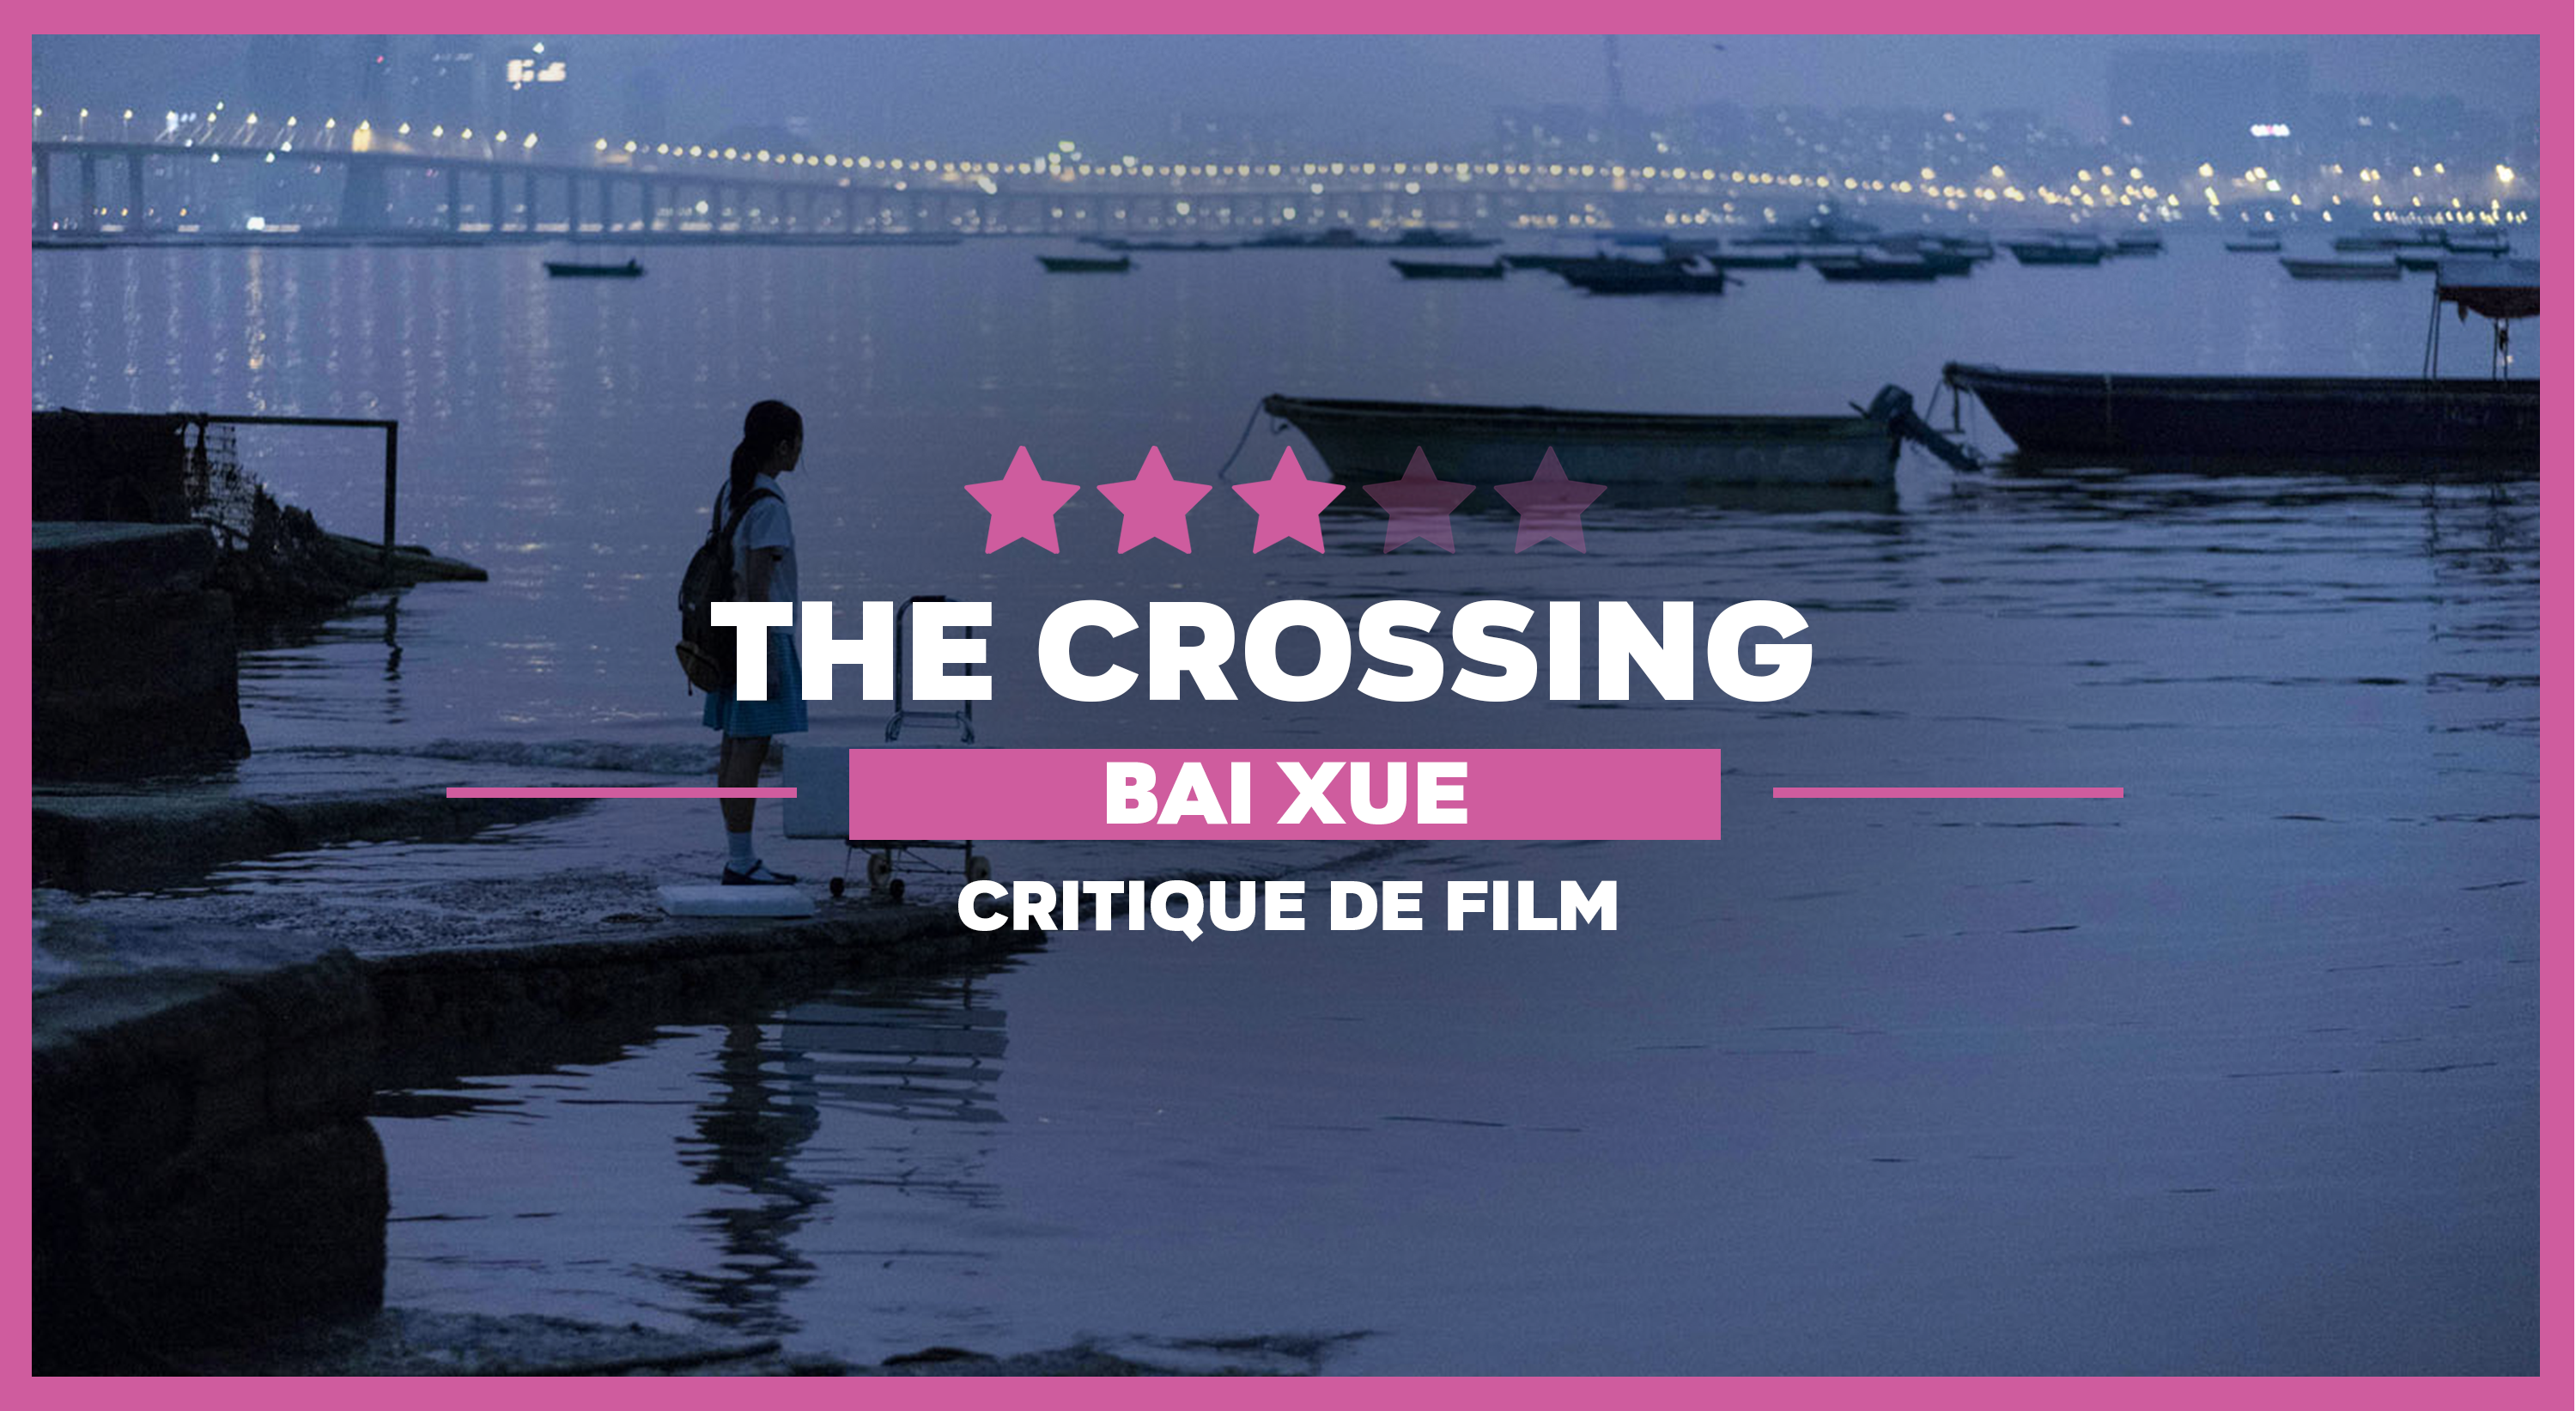 The Crossing fille au bord de l'eau